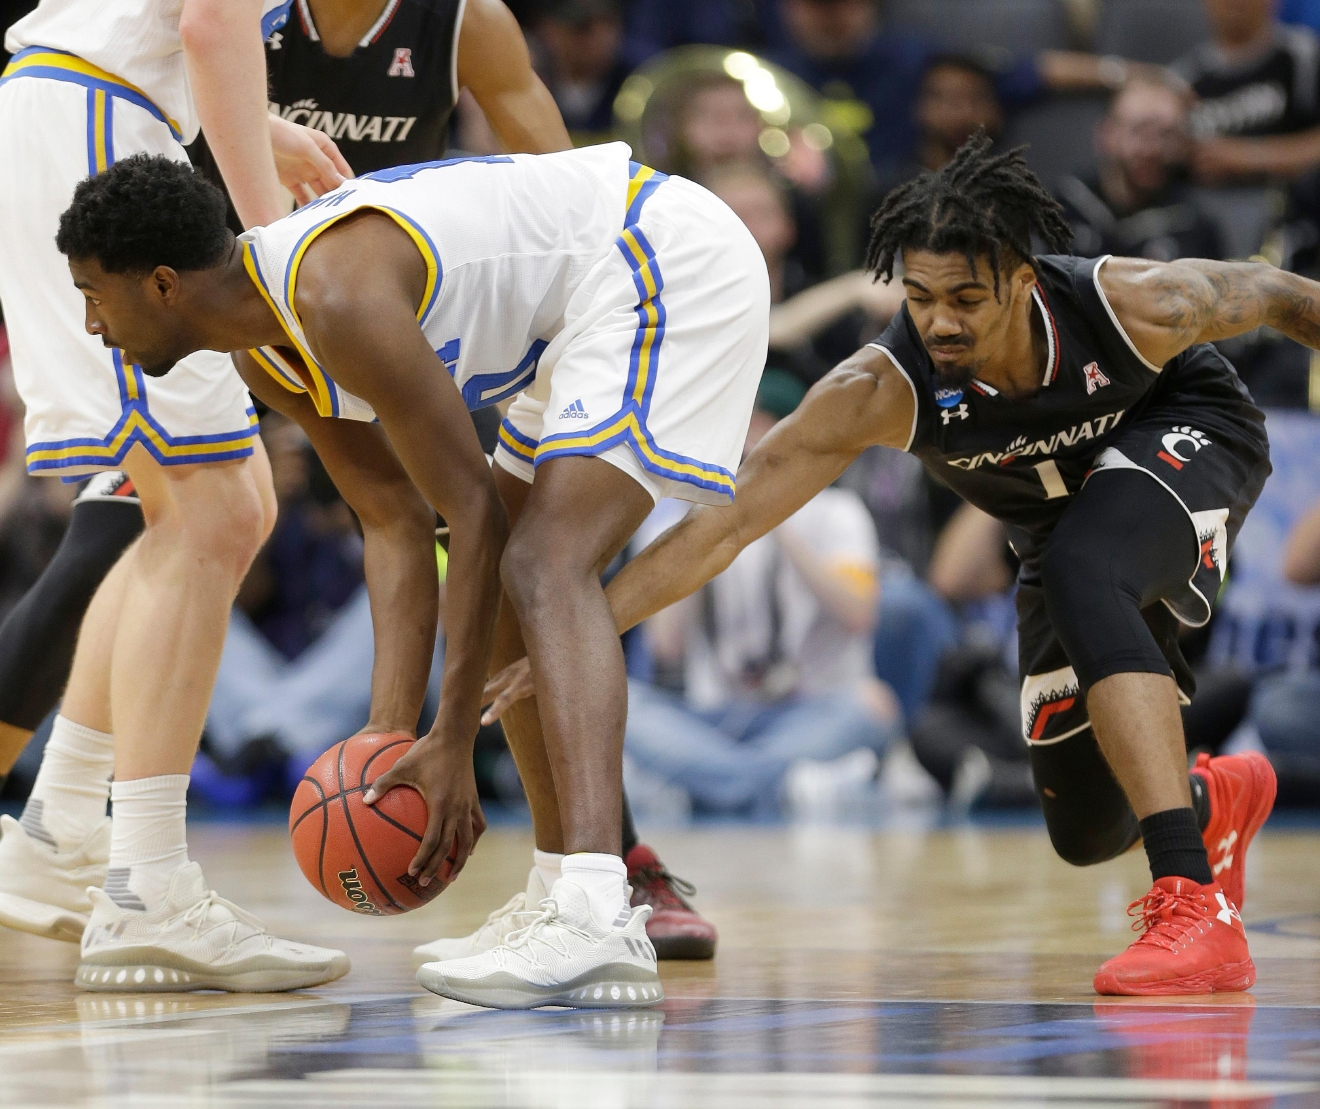 Cincinnati's Jacob Evans tries to steal the ball from UCLA guard Isaac Hamilton during the first half of a second-round game of the NCAA men's college basketball tournament in Sacramento, Calif., Sunday, March 19, 2017. (AP Photo/Rich Pedroncelli)